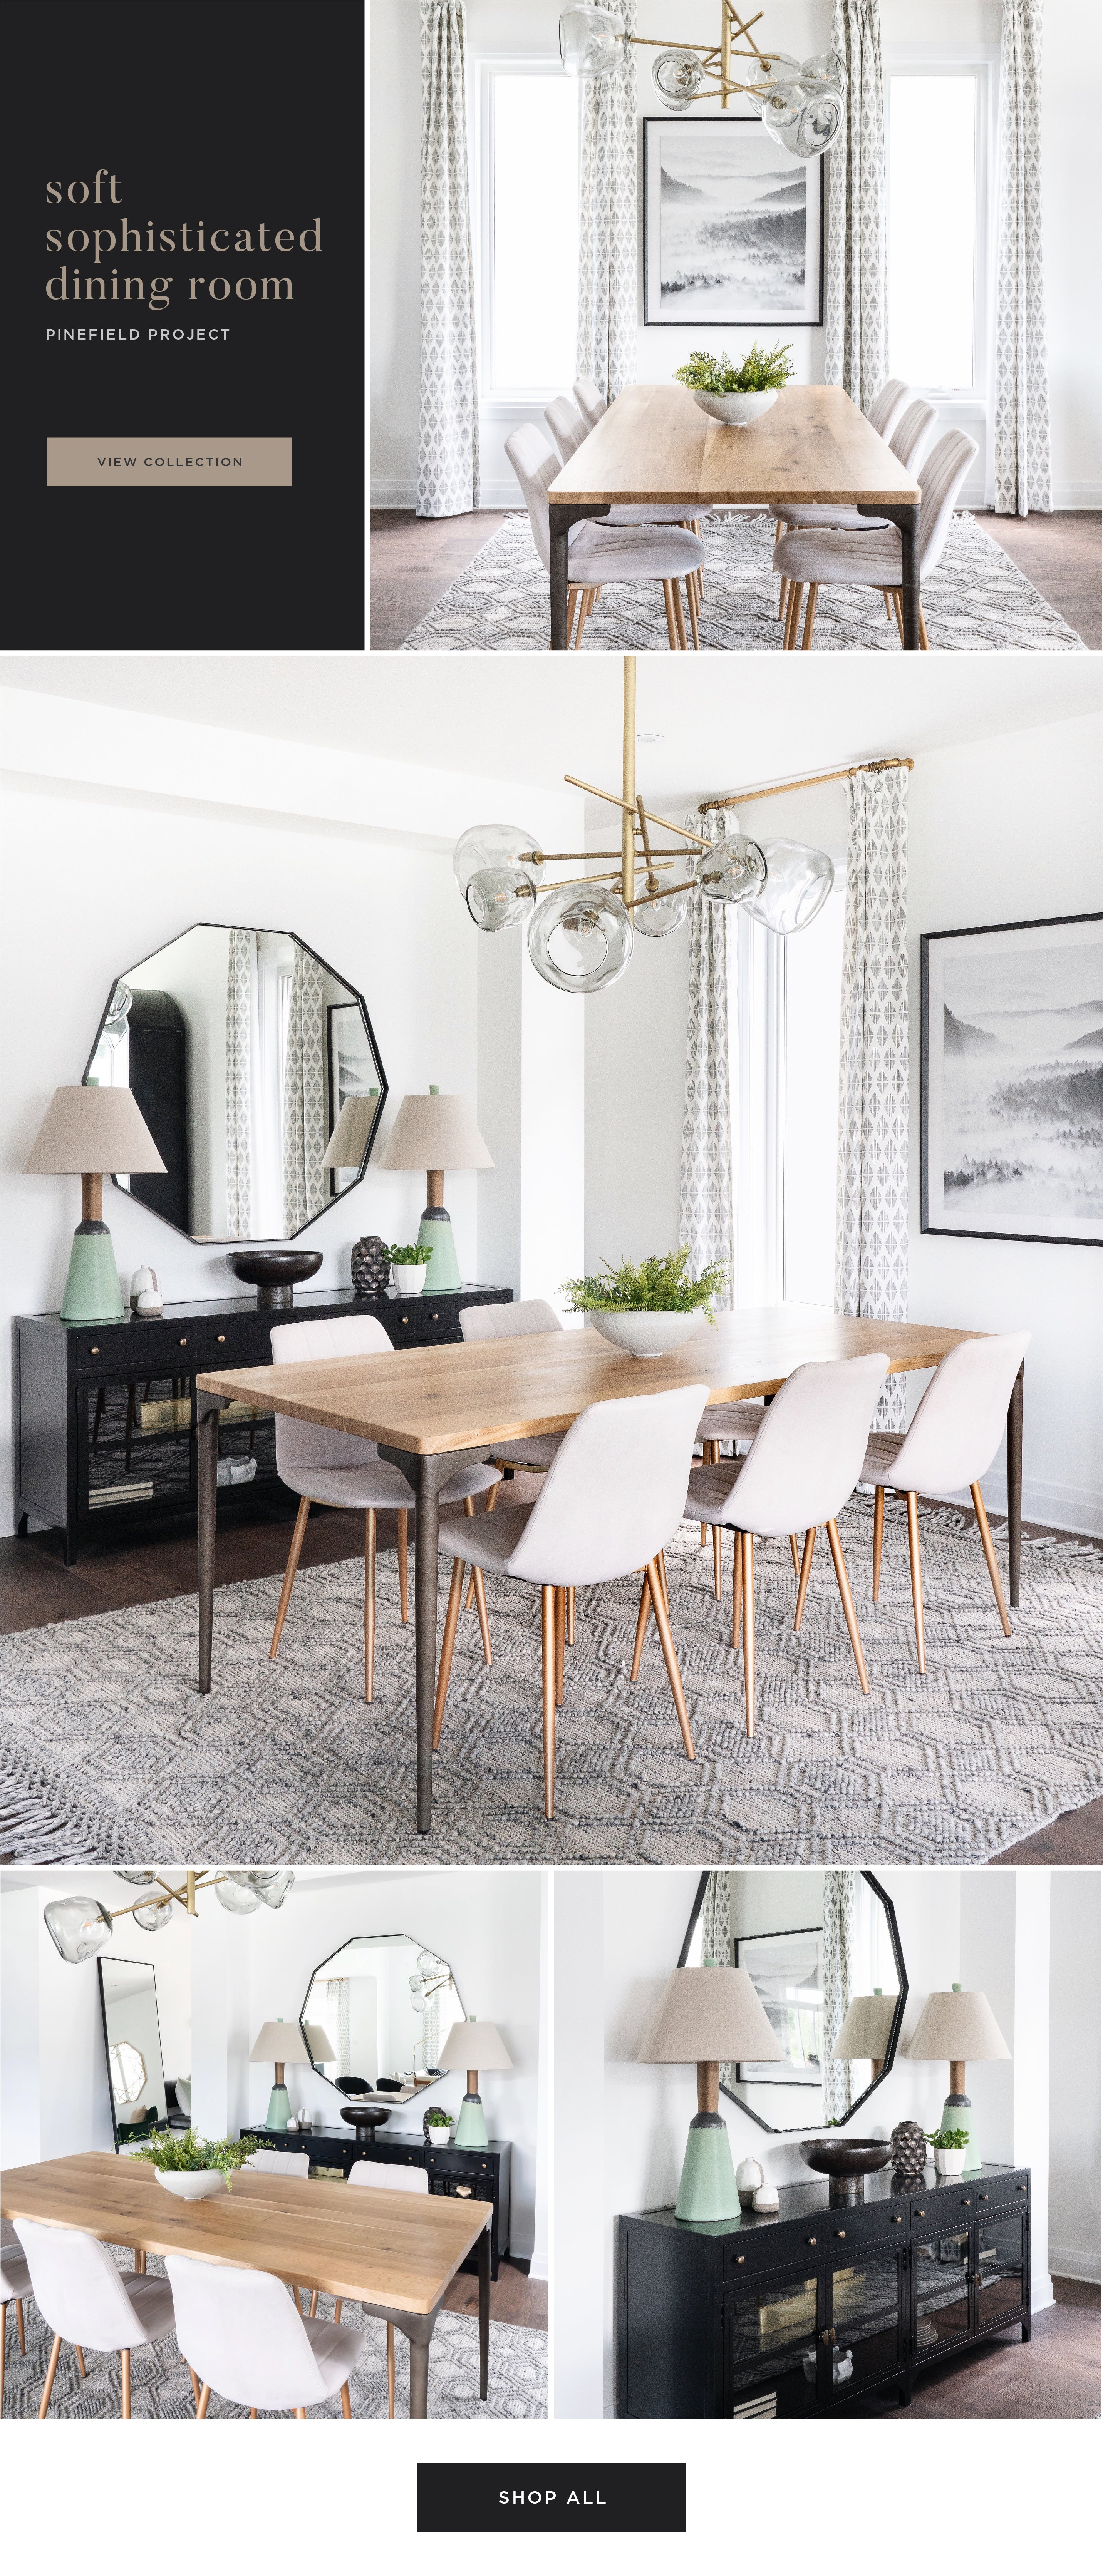 Shop the Look - Soft Sophisticated Dining Room